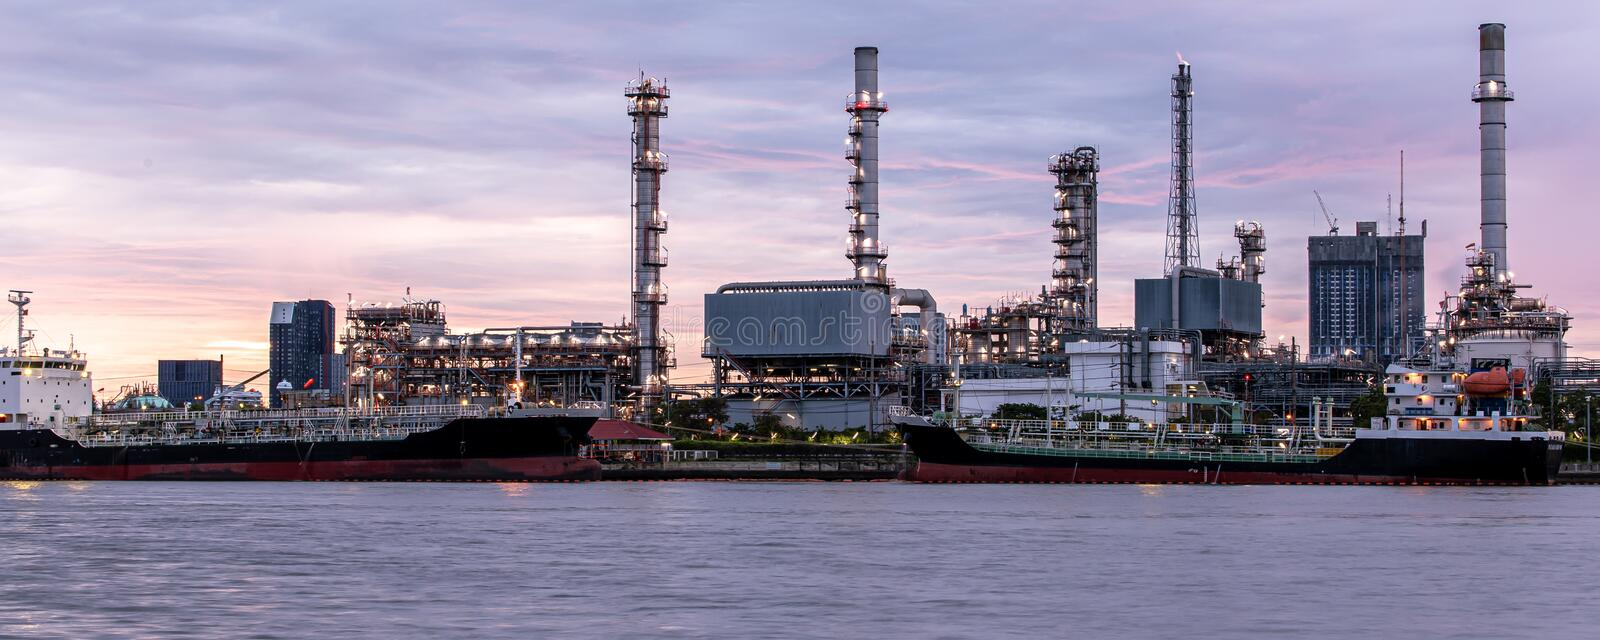 Banner of petroleum oil refinery plant beside river in twilight time. Crude Oil Process machinery stock images